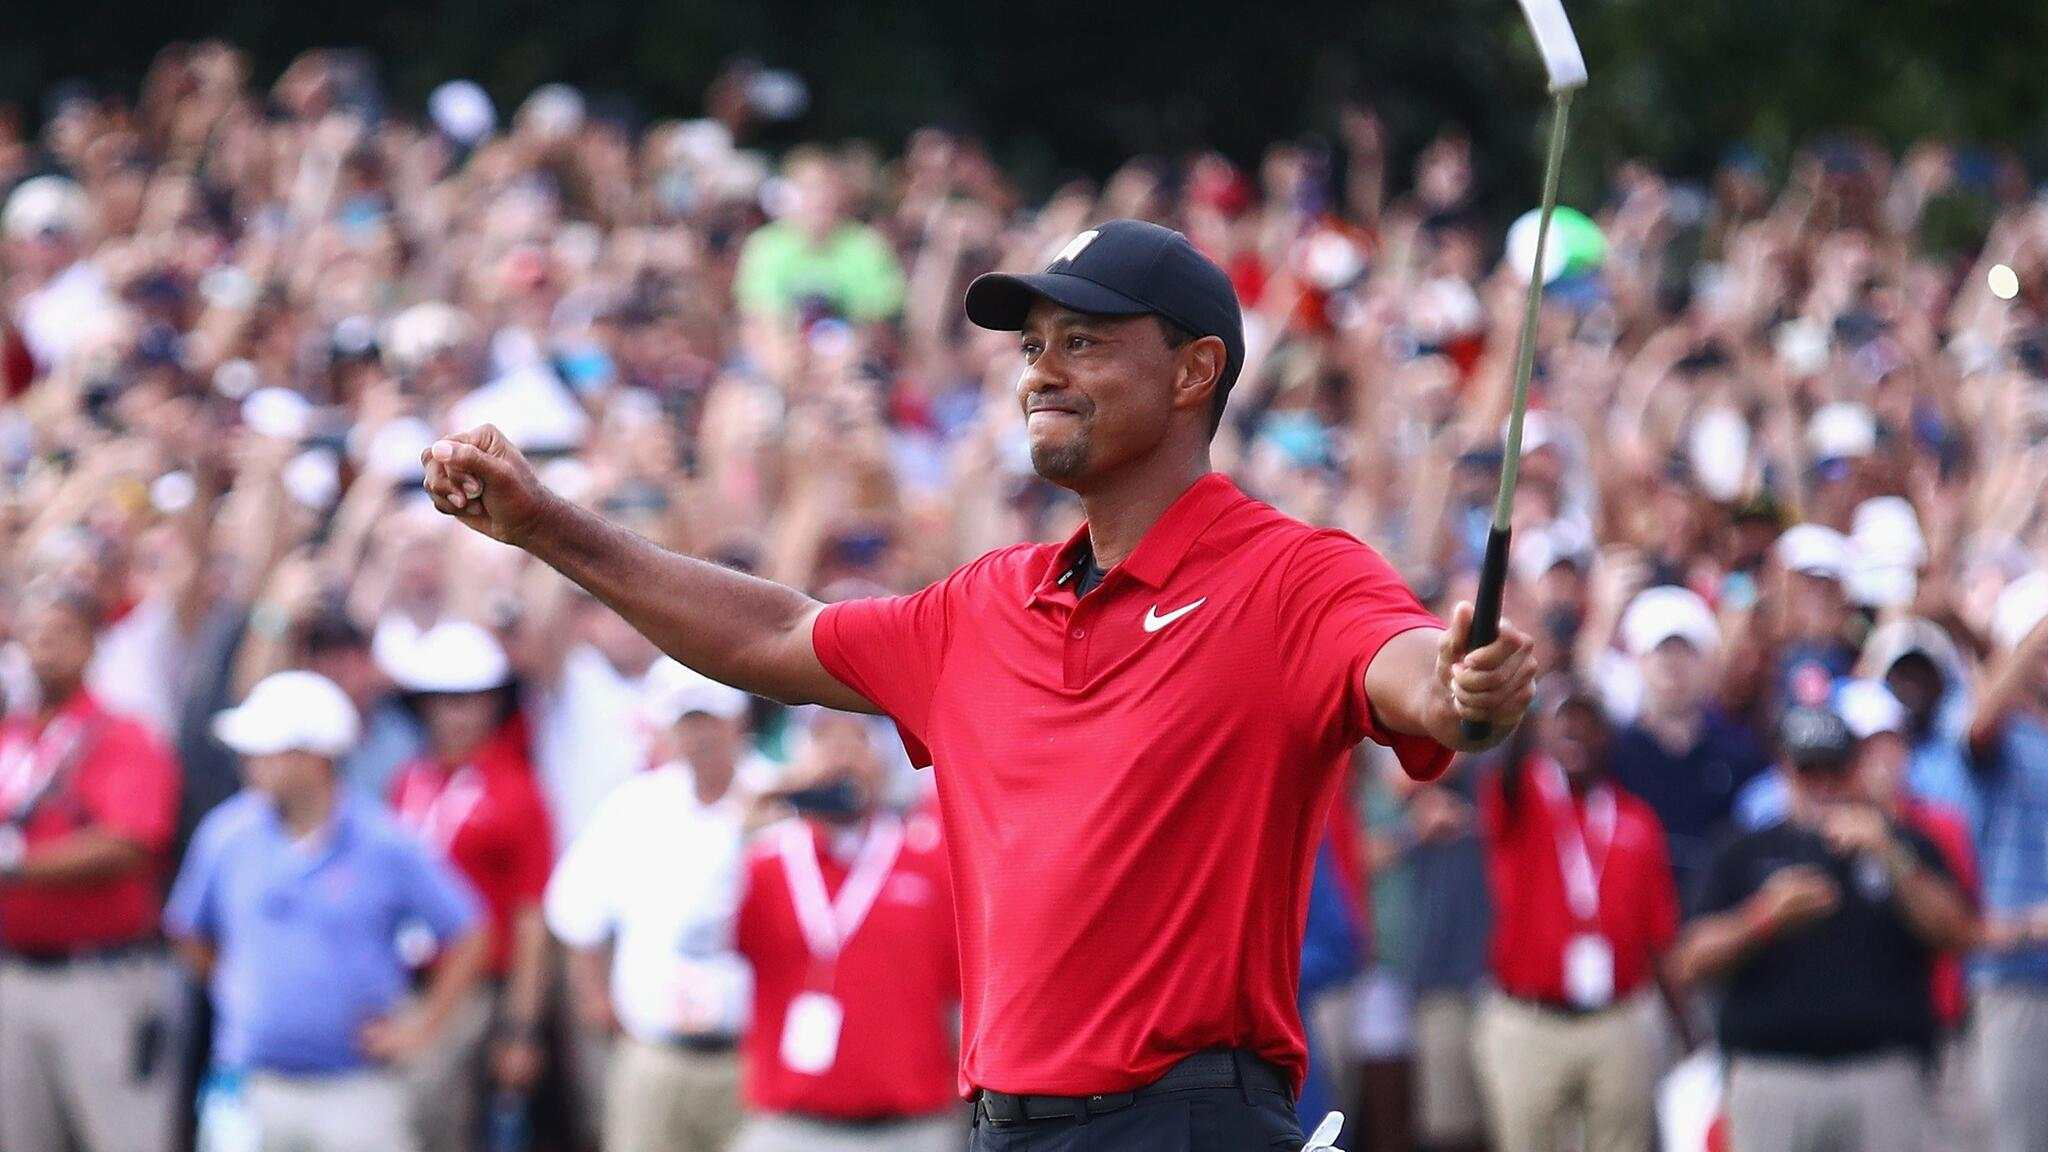 ATLANTA, GA - SEPTEMBER 23: Tiger Woods of the United States celebrates making a par on the 18th green to win the TOUR Championship at East Lake Golf Club on September 23, 2018 in Atlanta, Georgia.   Tim Bradbury/Getty Images/AFP== FOR NEWSPAPERS, INTERNET, TELCOS & TELEVISION USE ONLY ==